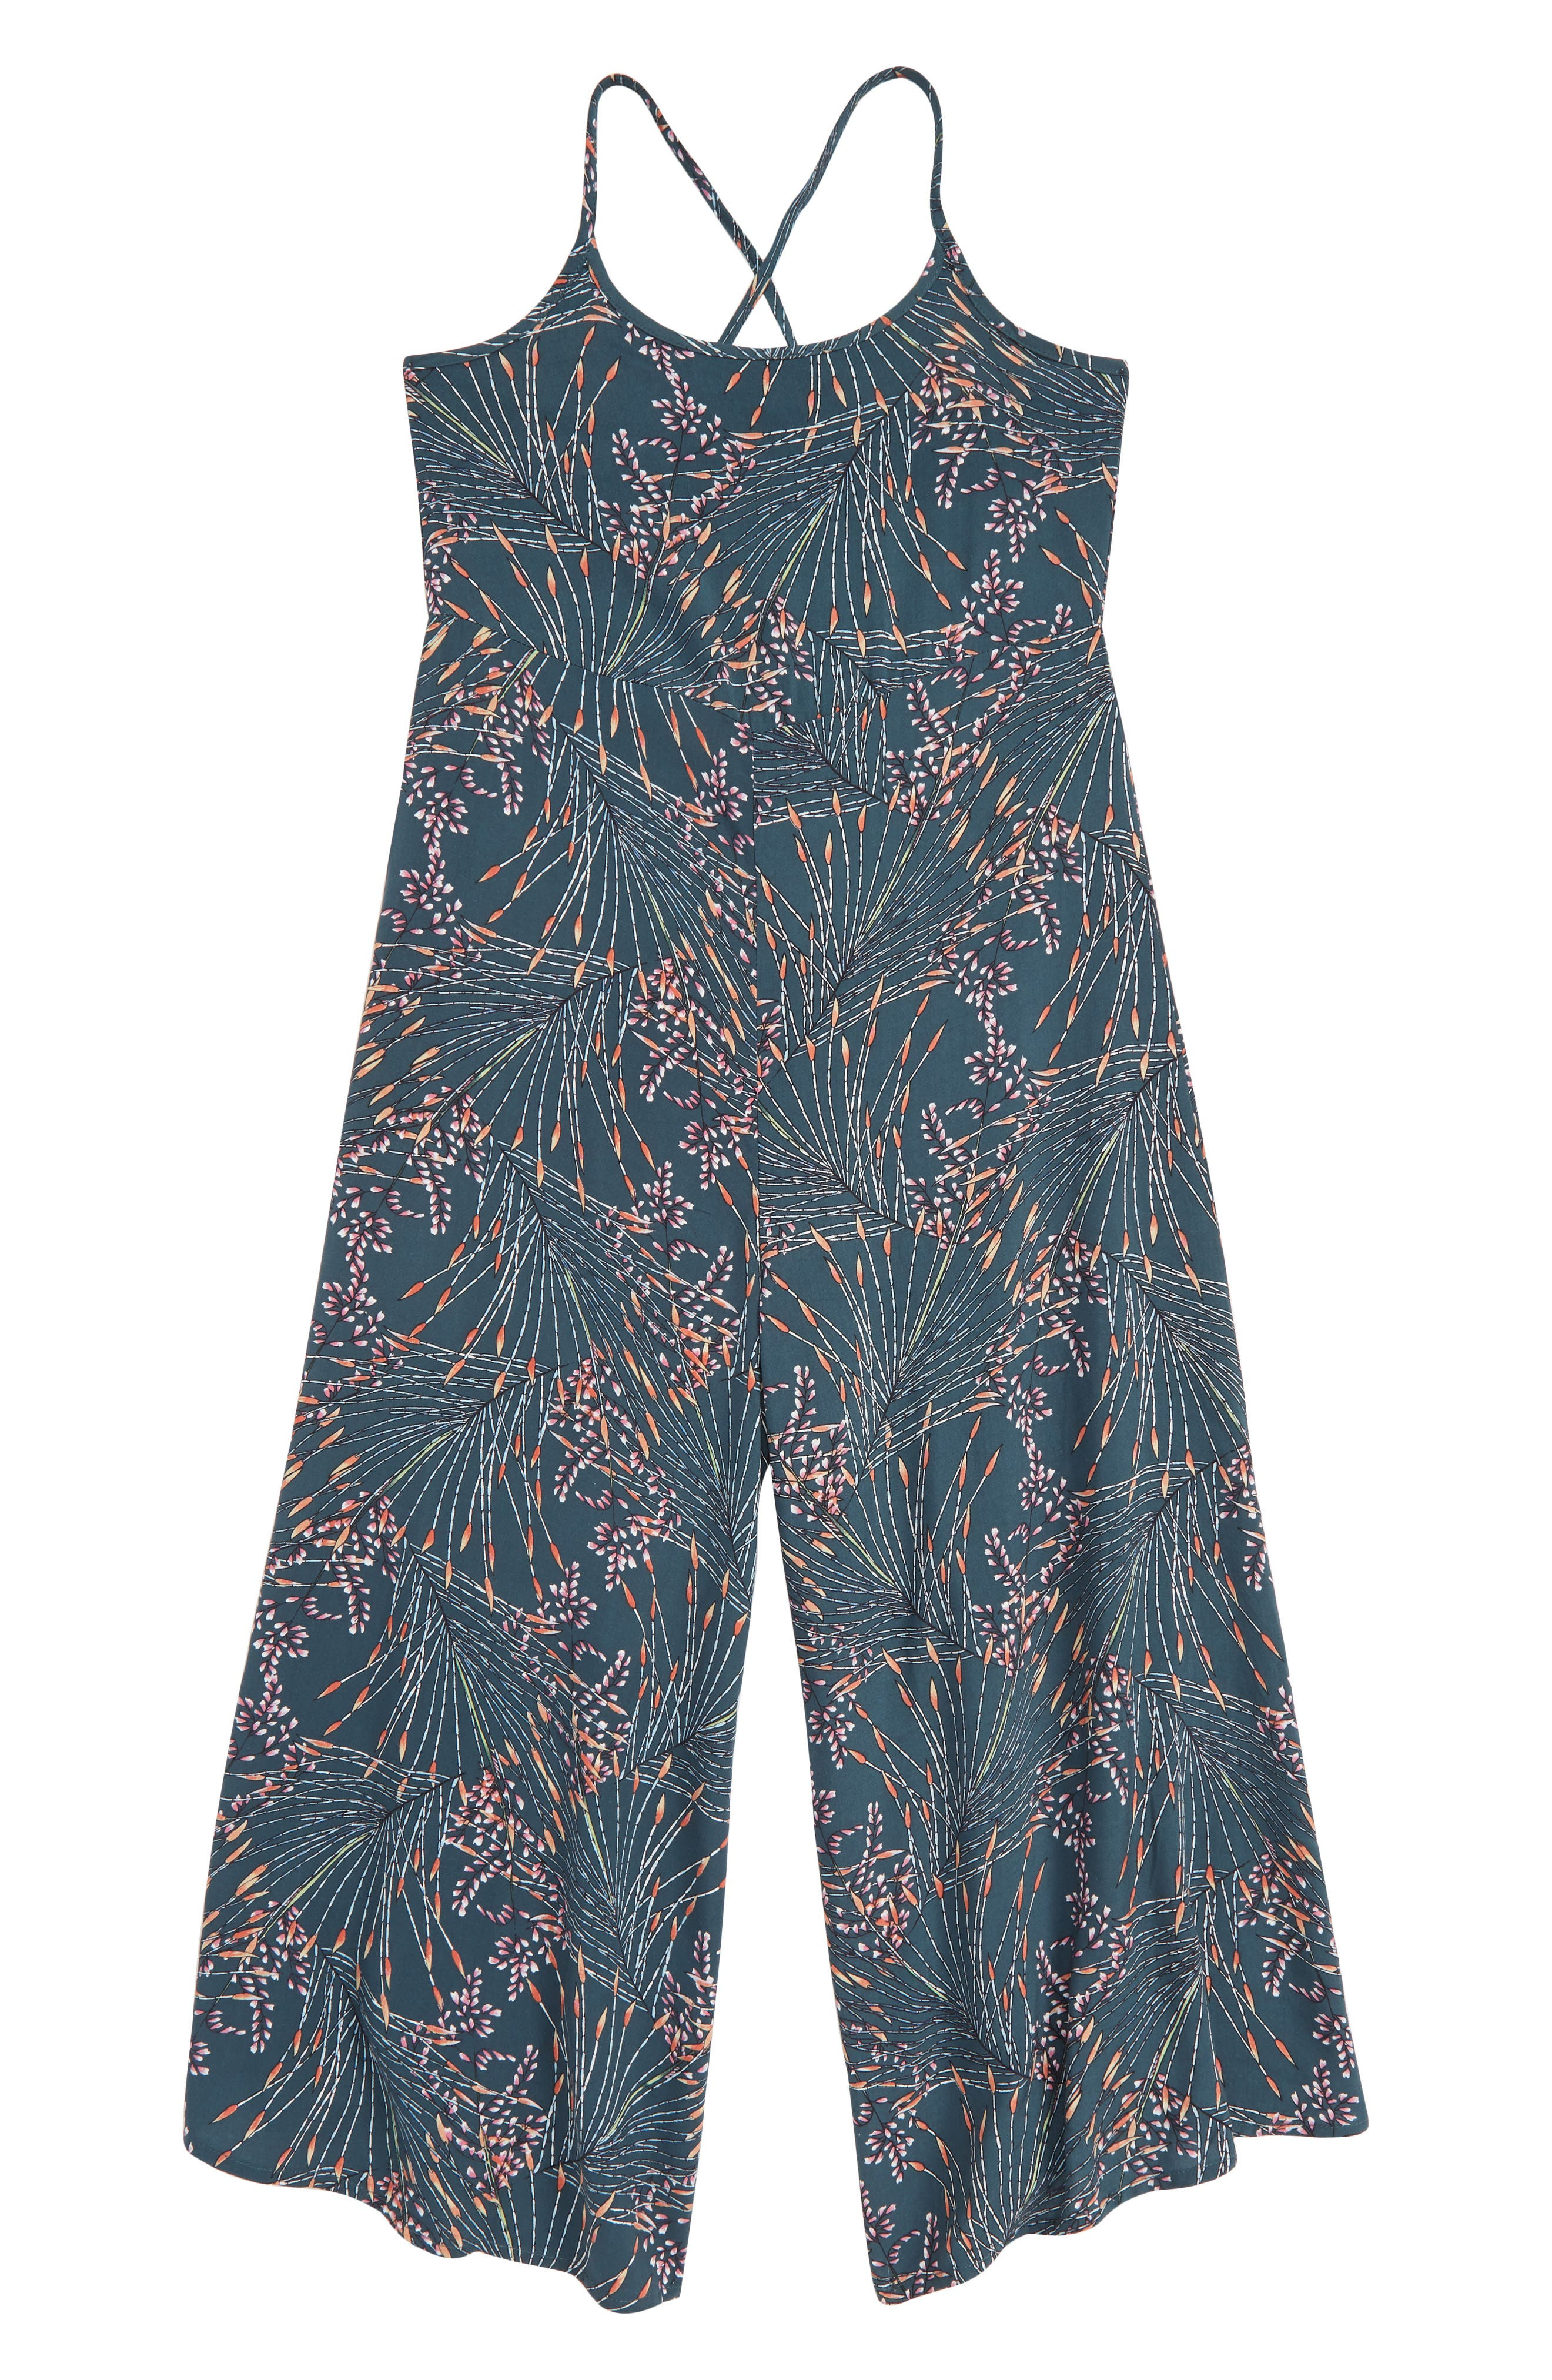 O'NEILL Dayton Woven Jumpsuit, Main, color, STARGAZER